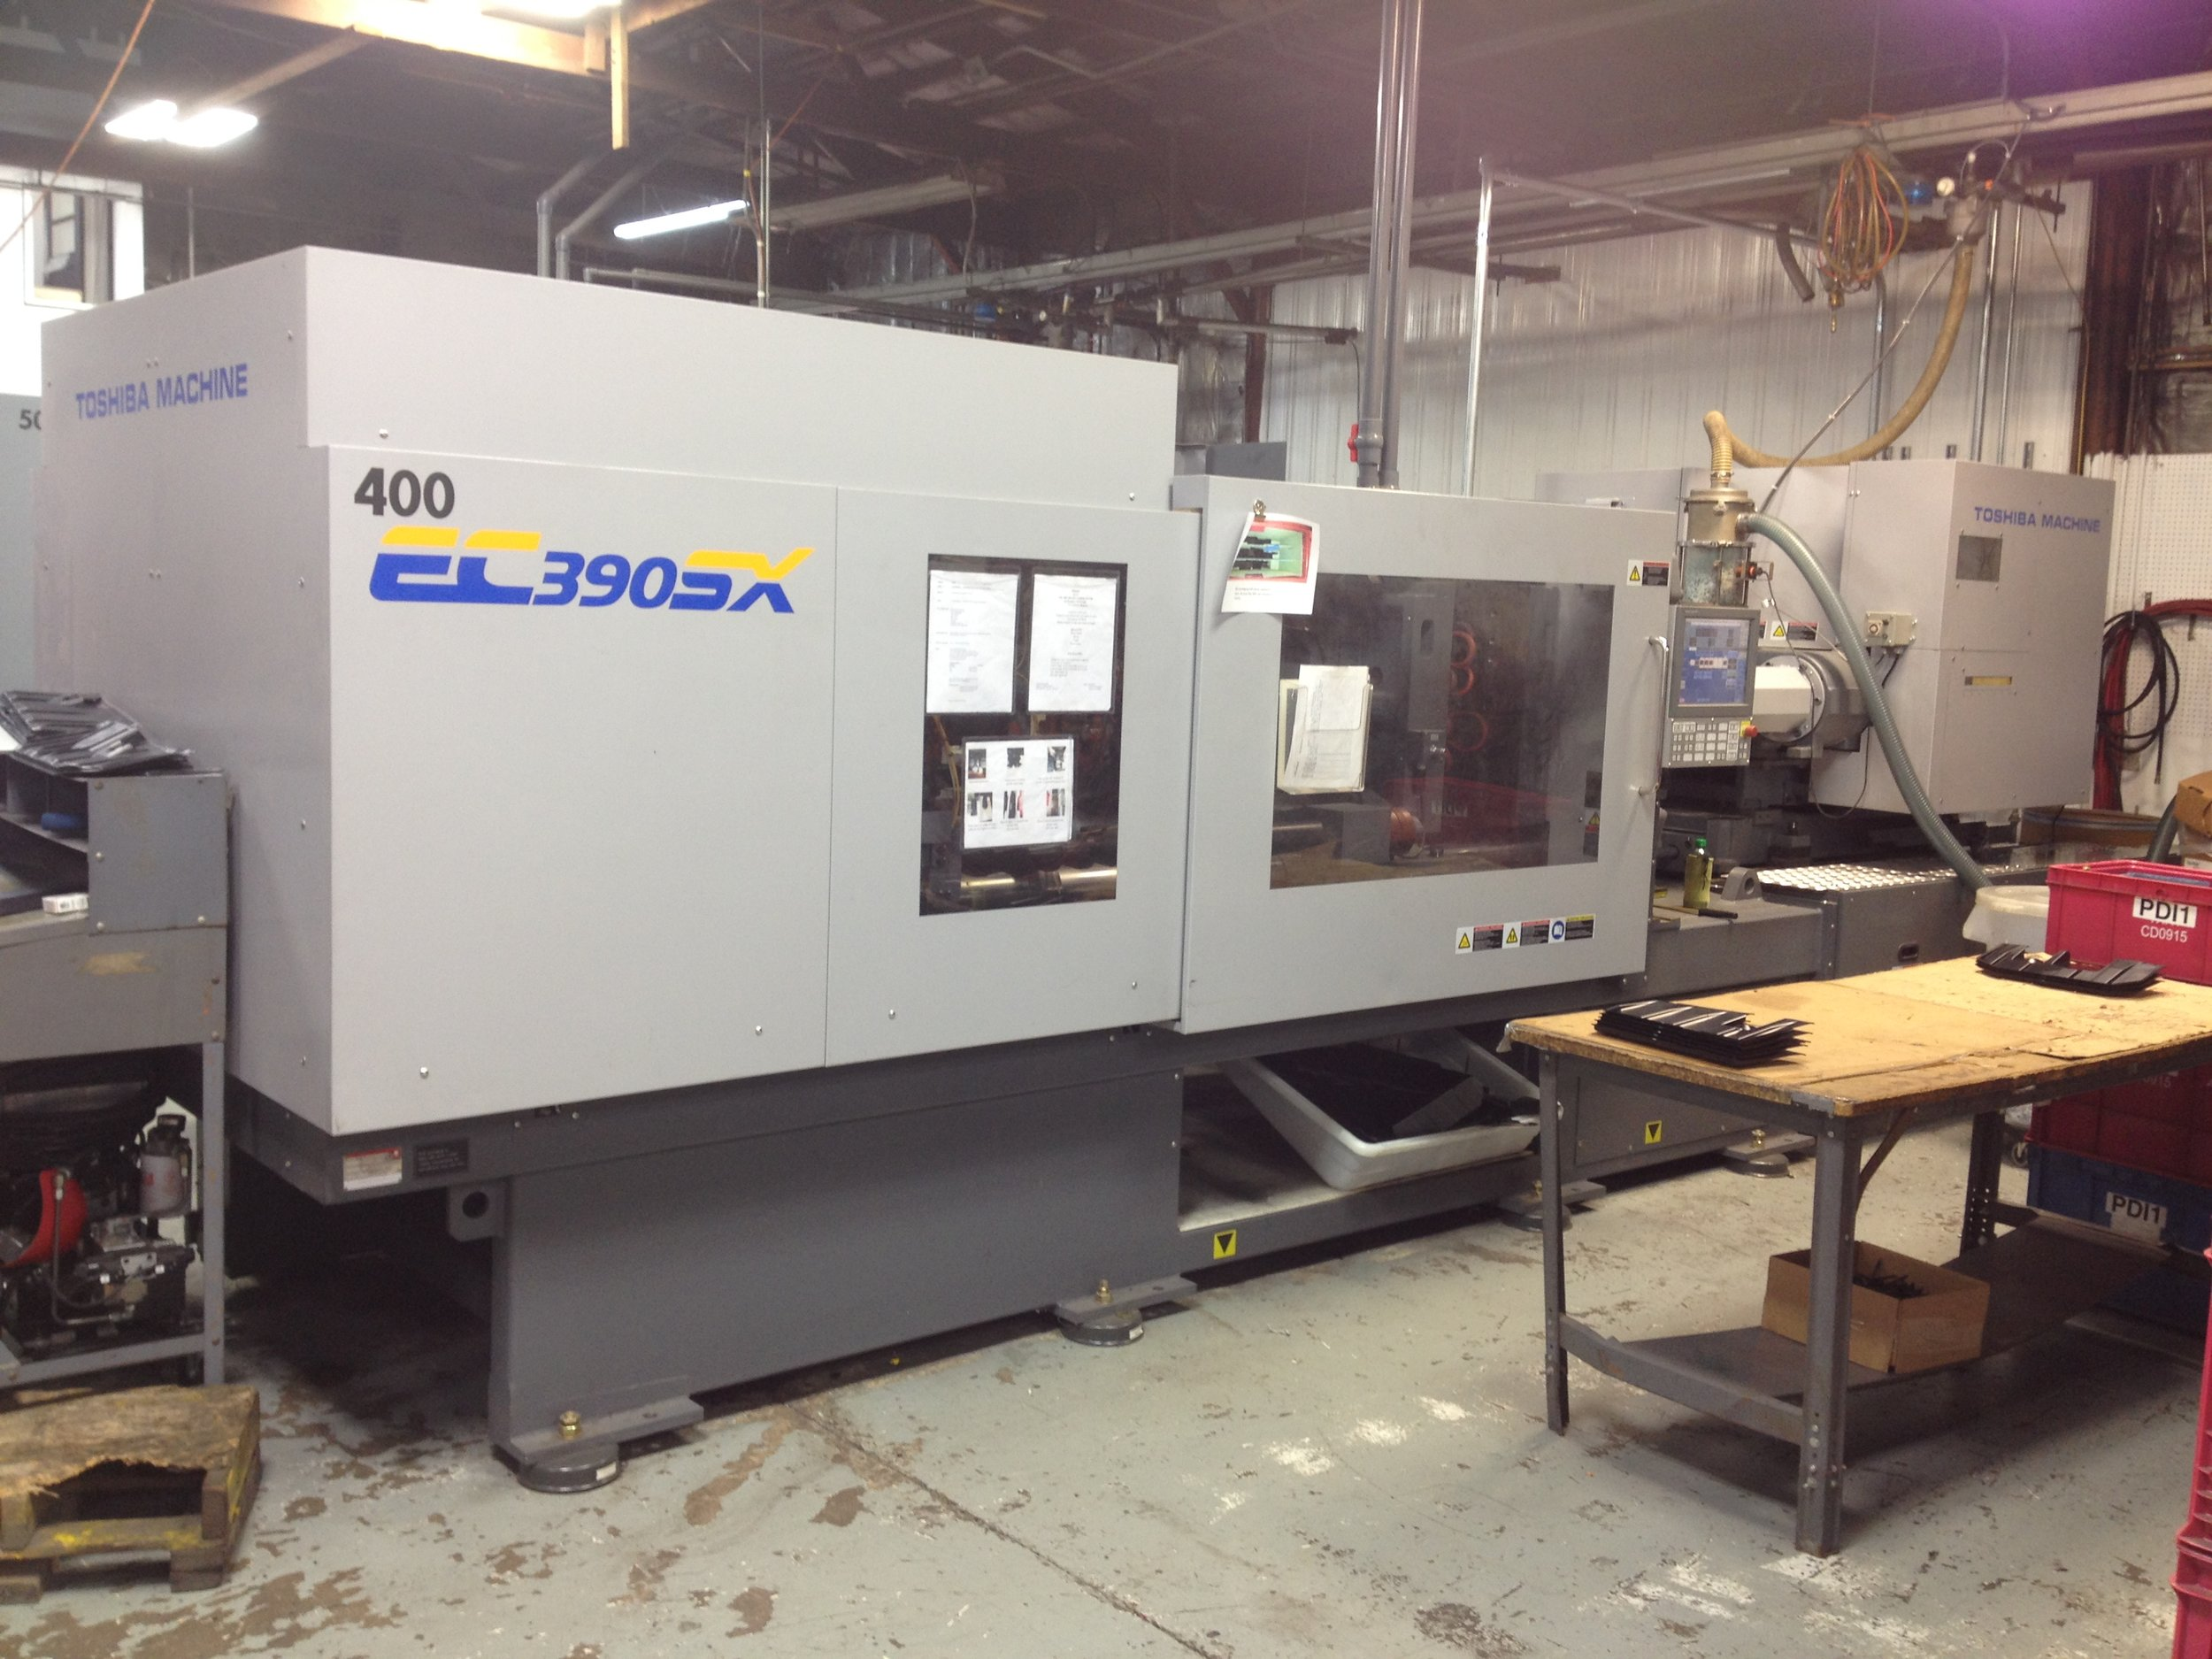 "Toshiba EC390SX 400T  Equipped with a robot 385 Ton Max Part Length/Width 25"" x 24"" Max Part Weight: 37 oz Max Mold Width: 31.9″ Min Stack Height: 11.8 Max Daylight: 55.9″ Ejector Stroke: 5.9″"